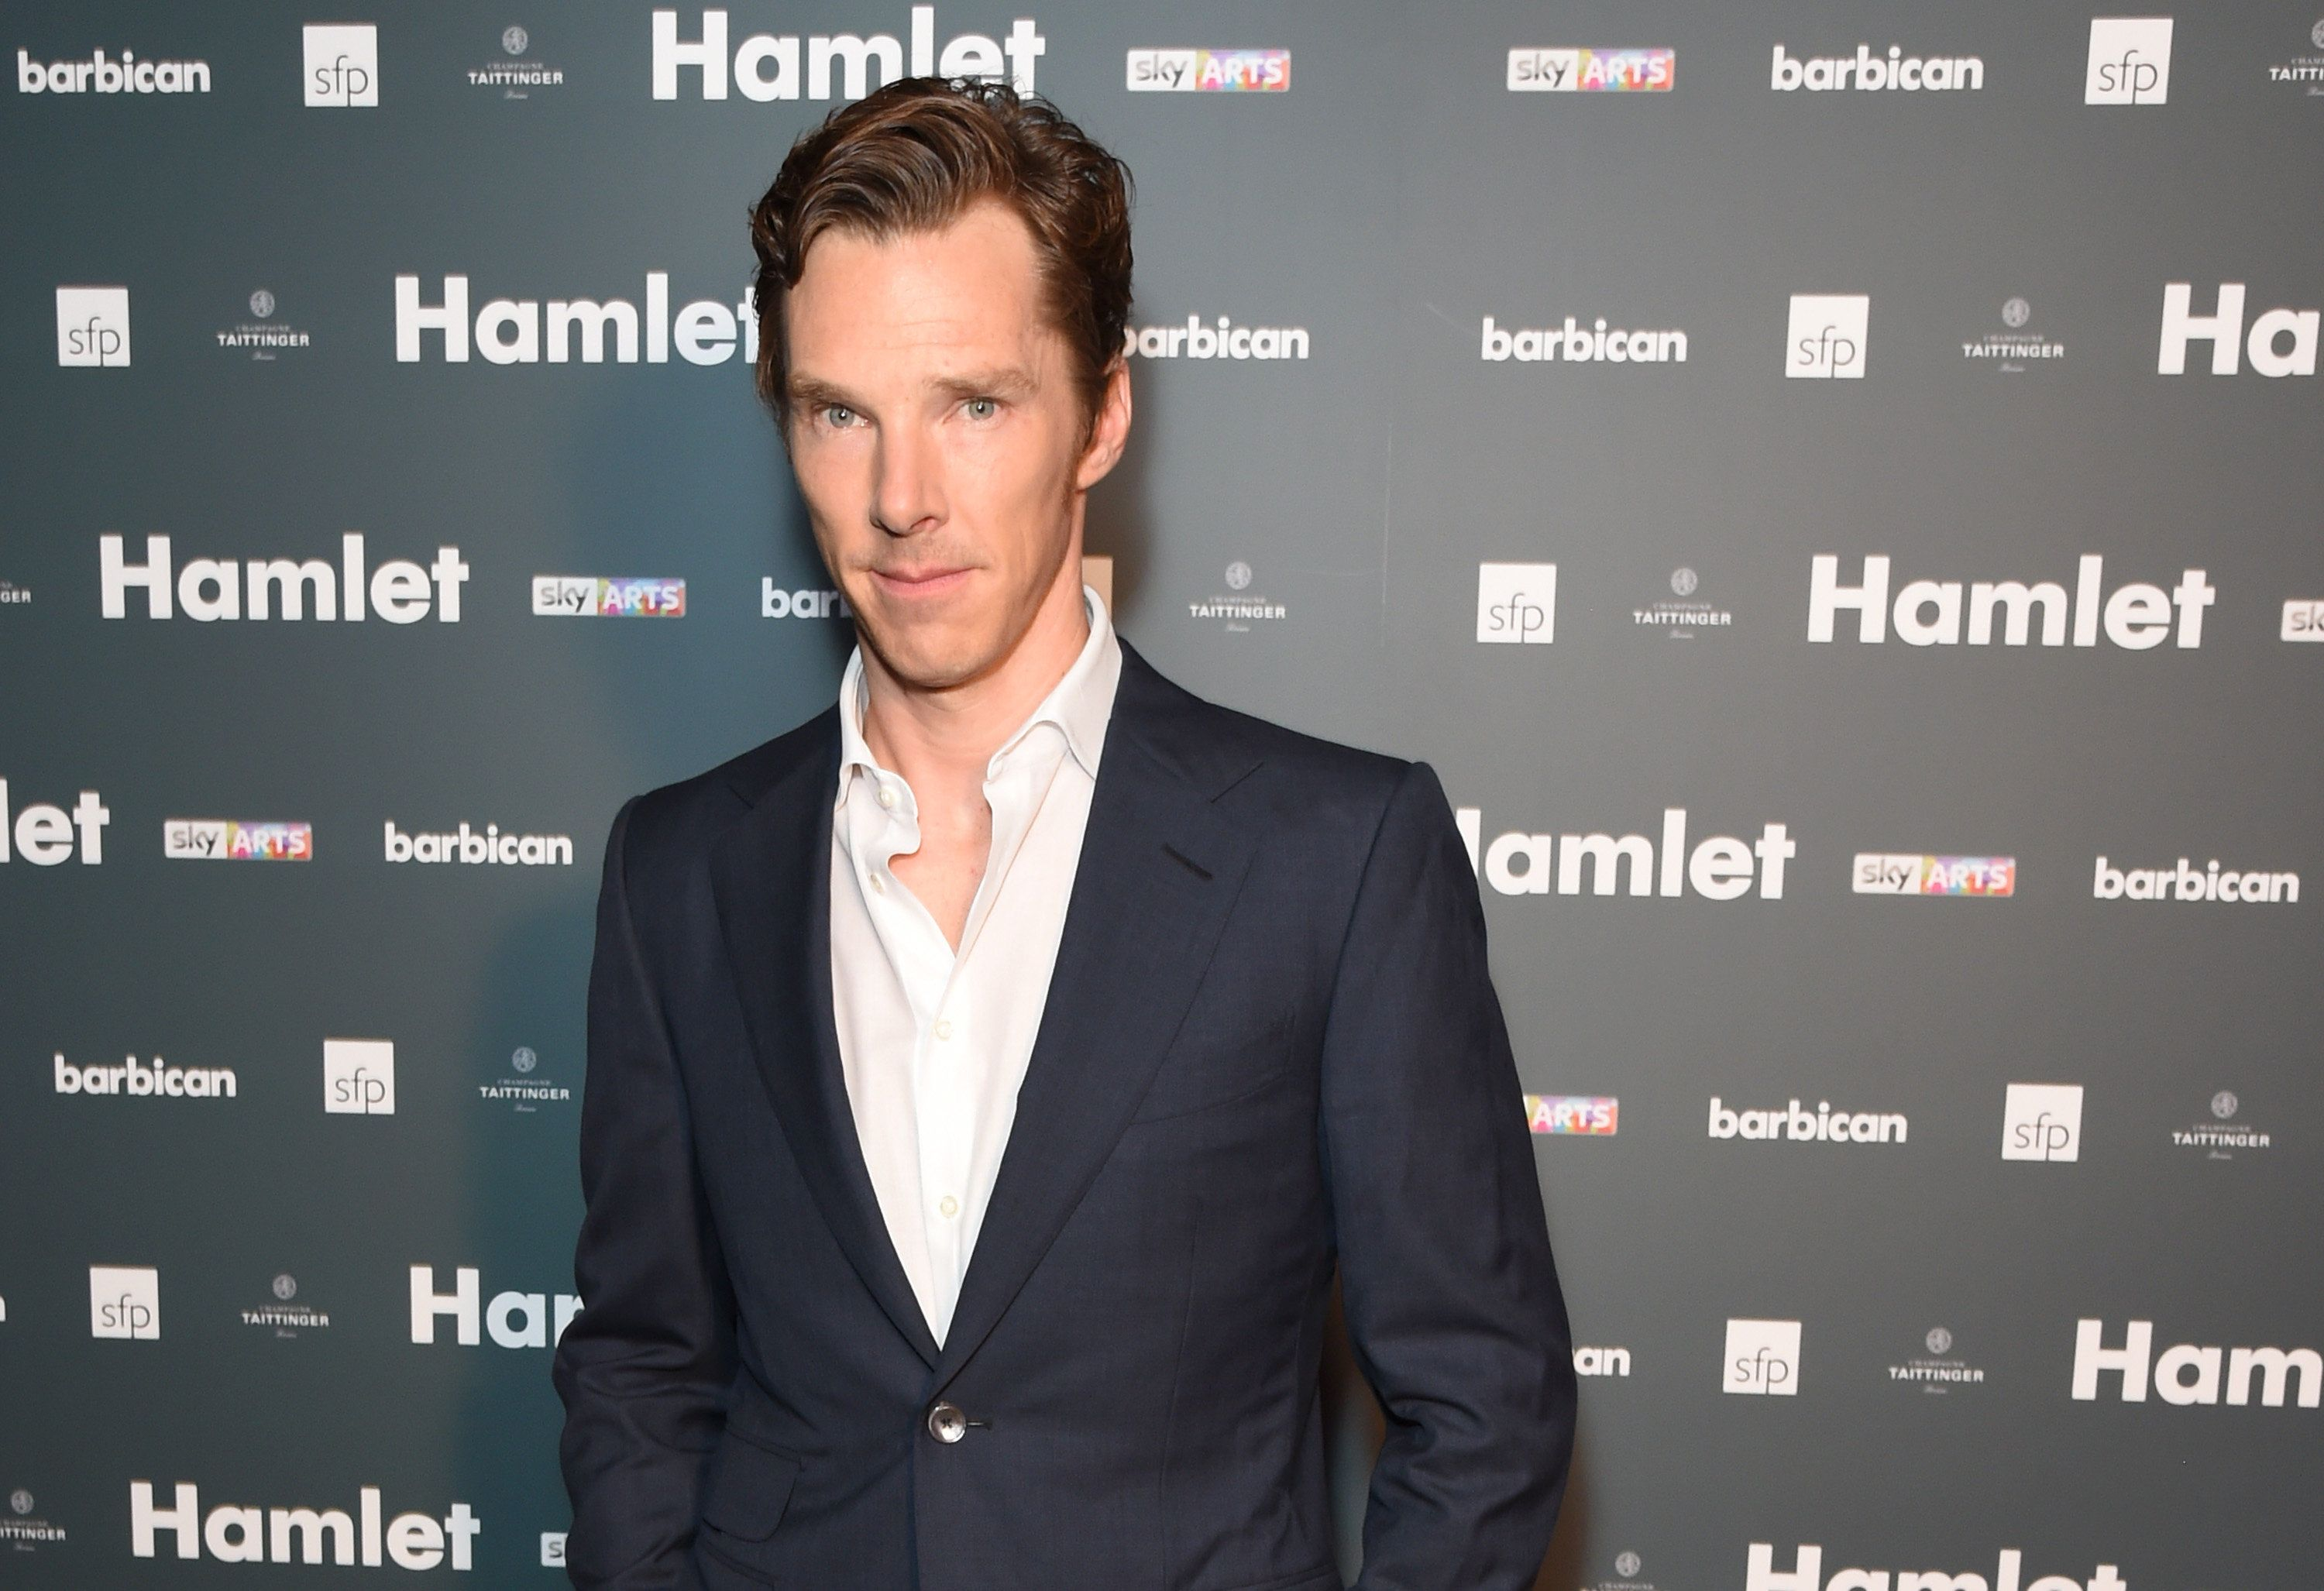 LONDON, ENGLAND - AUGUST 25:  Benedict Cumberbatch attends an after party following the press night performance of 'Hamlet' at the Barbican Centre on August 25, 2015 in London, England.  (Photo by David M. Benett/Dave Benett/Getty Images)